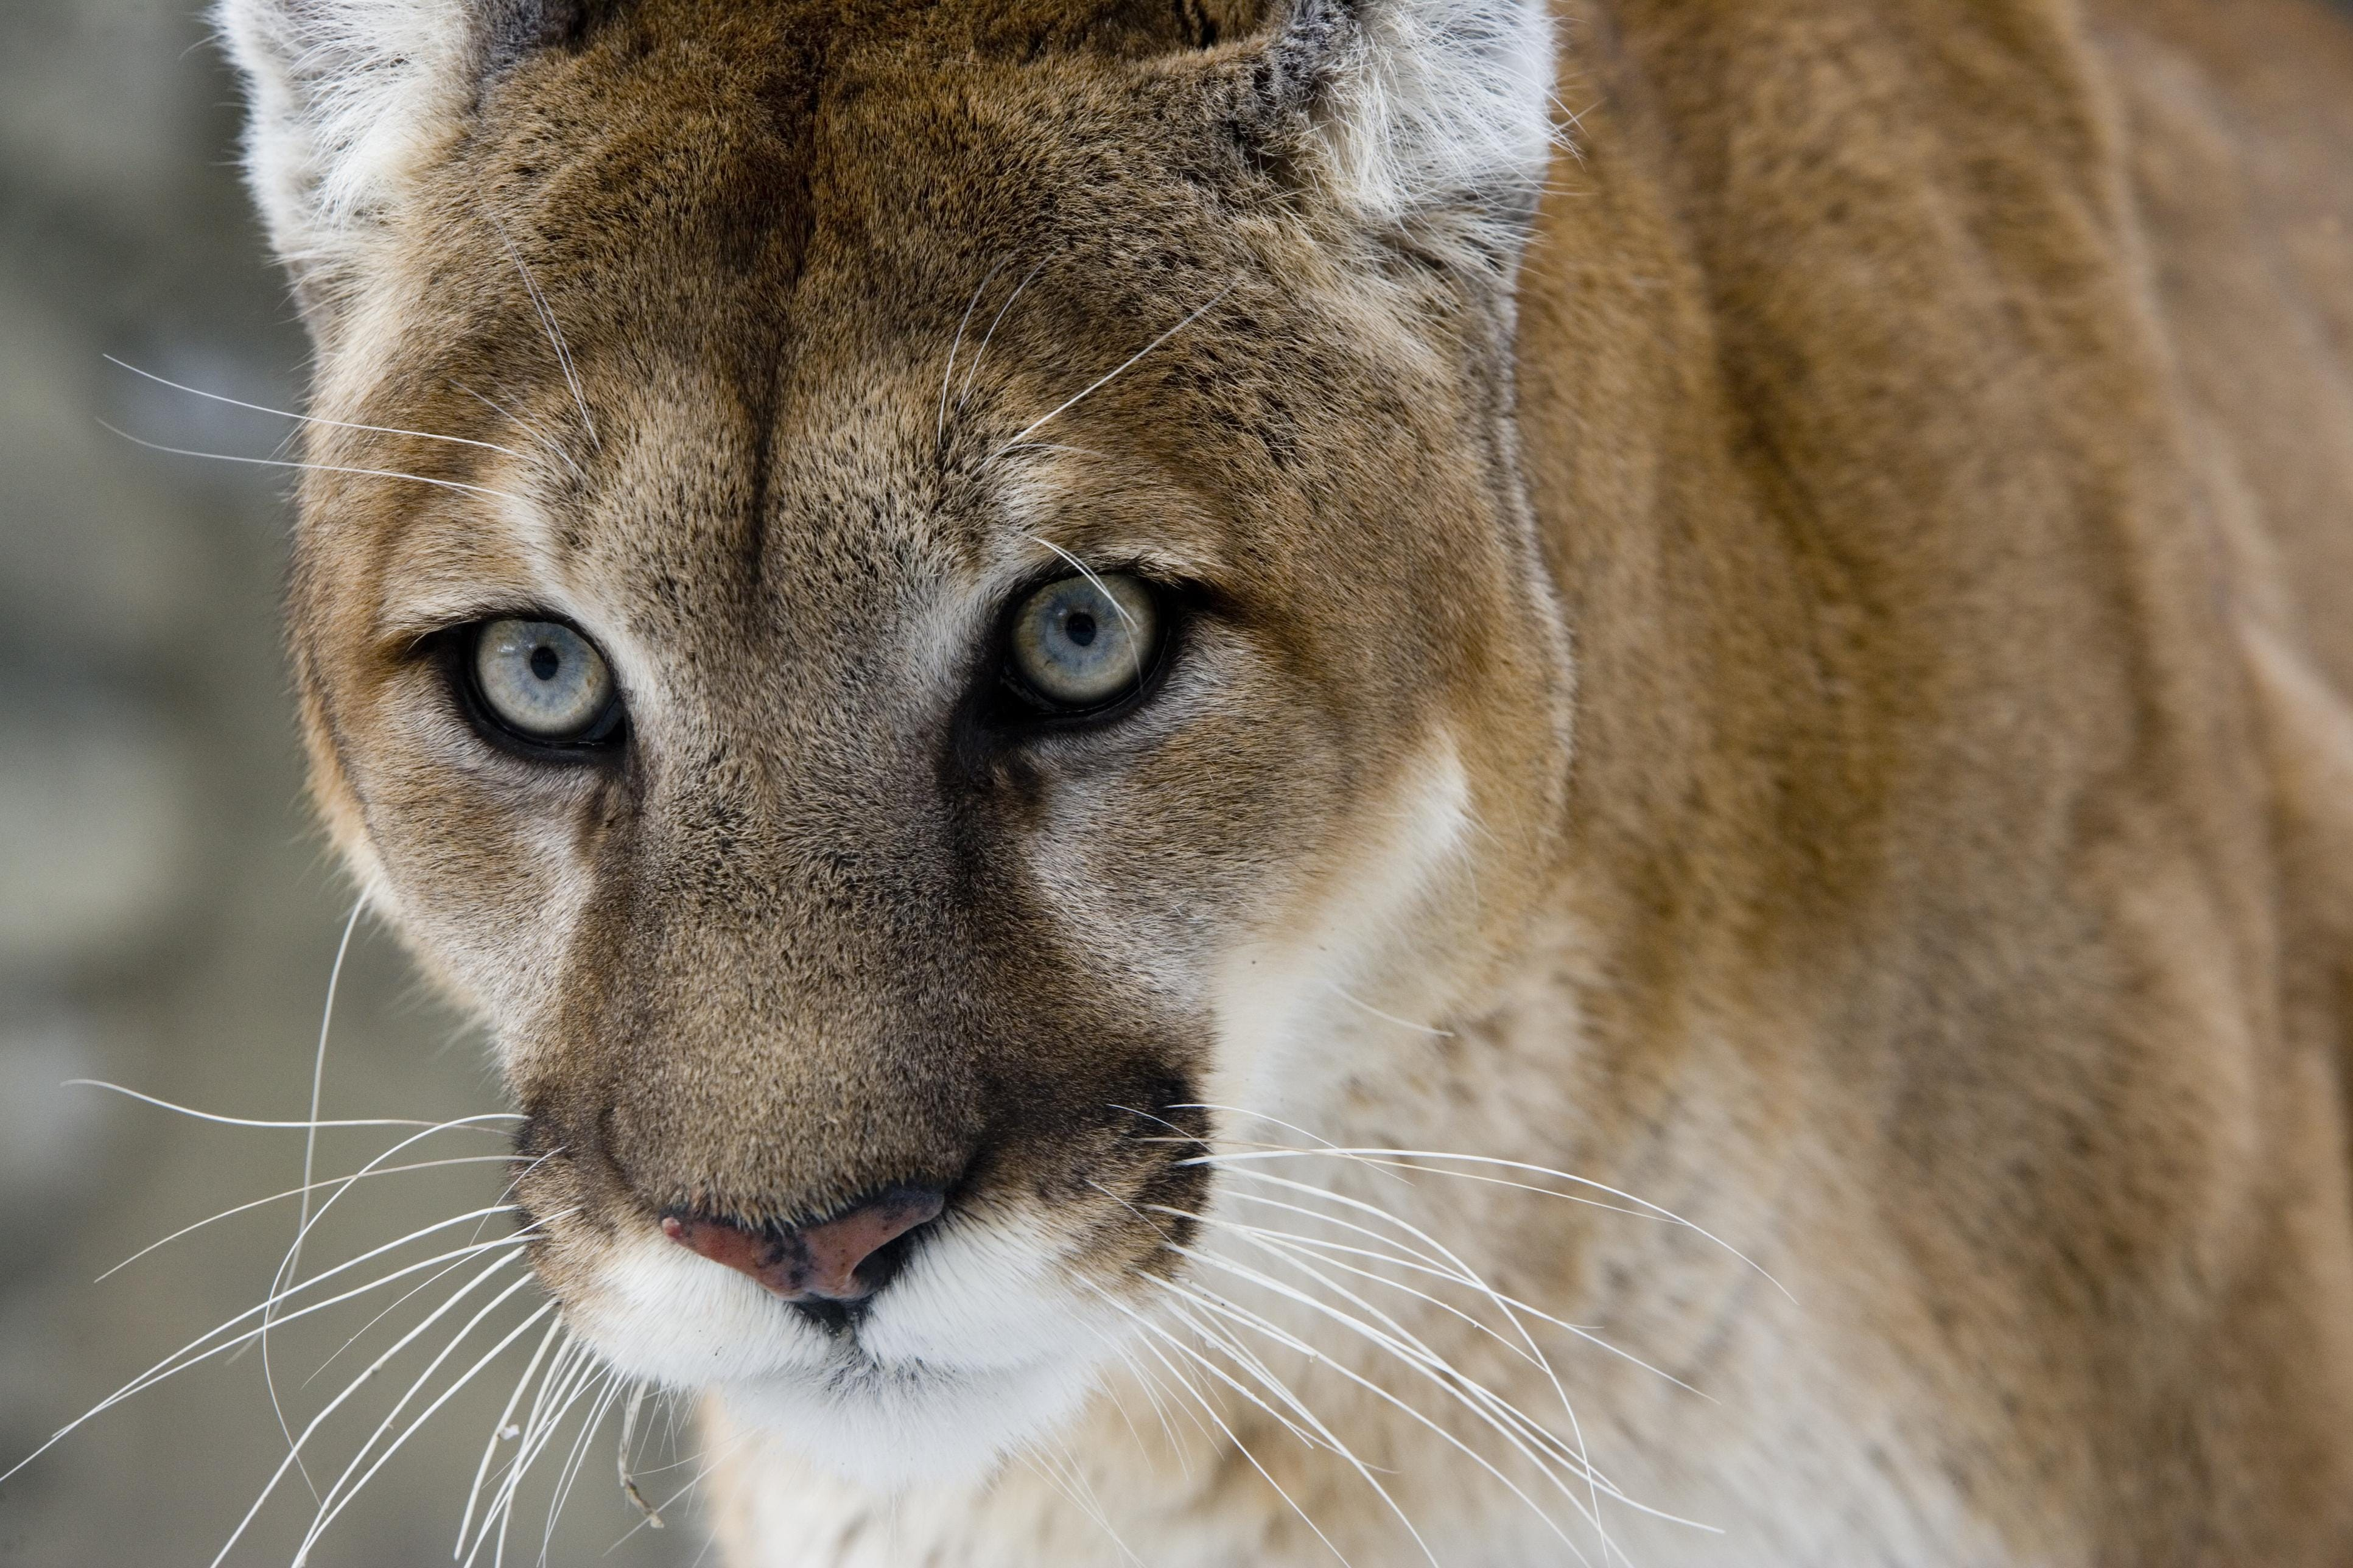 Cougars in the wild in NY? Not yet, the state says